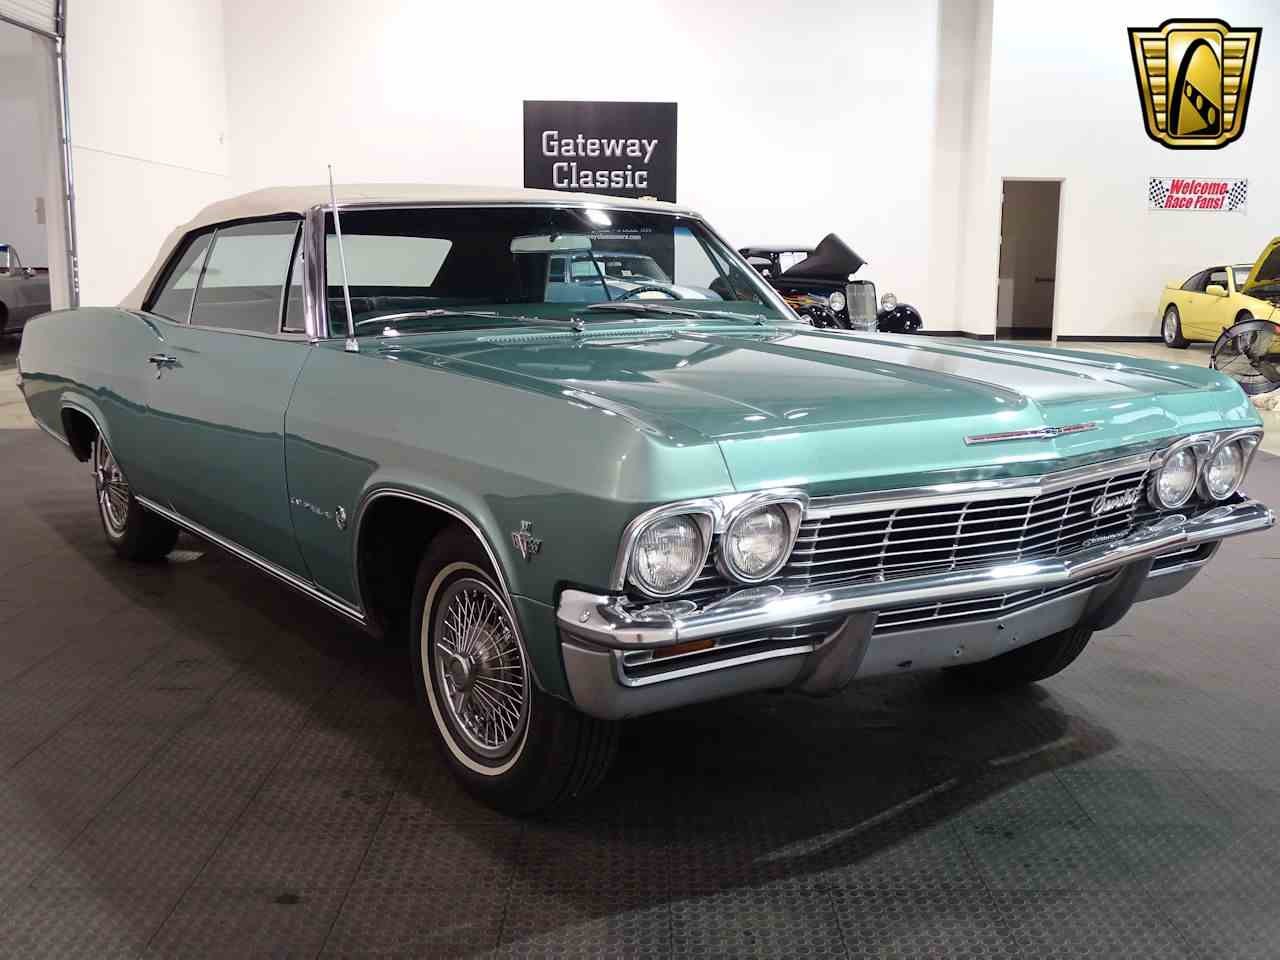 Large Picture of '65 Chevrolet Impala located in Indiana - $34,995.00 - L5YV